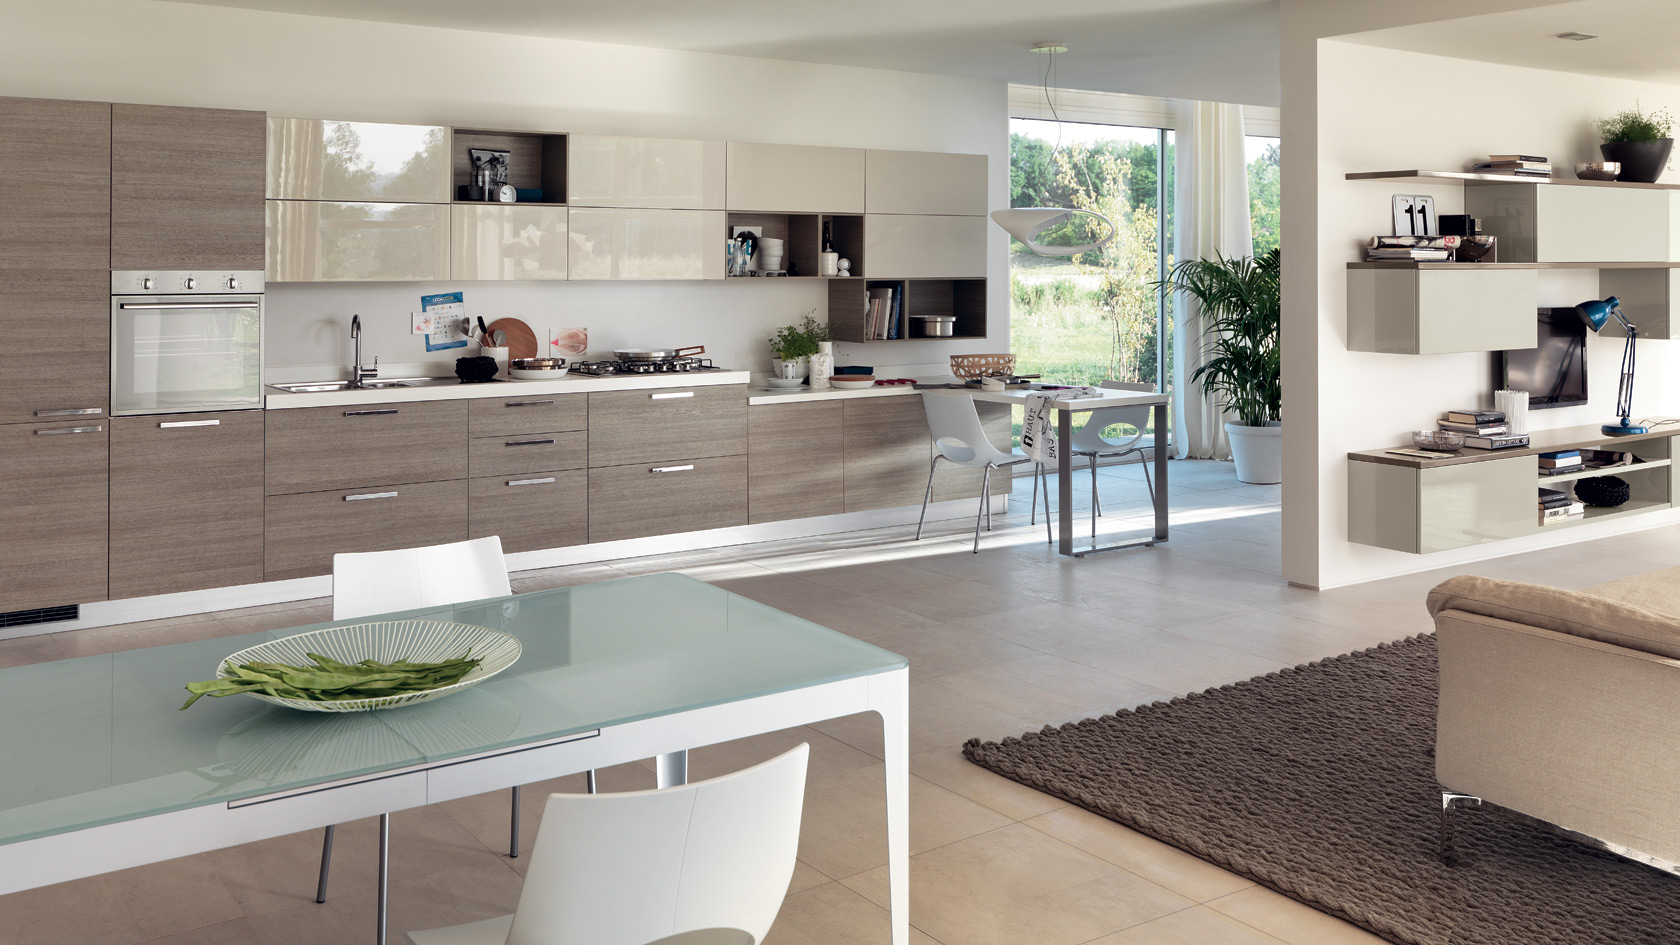 Awesome Cucine Scavolini 2014 Photos - harrop.us - harrop.us